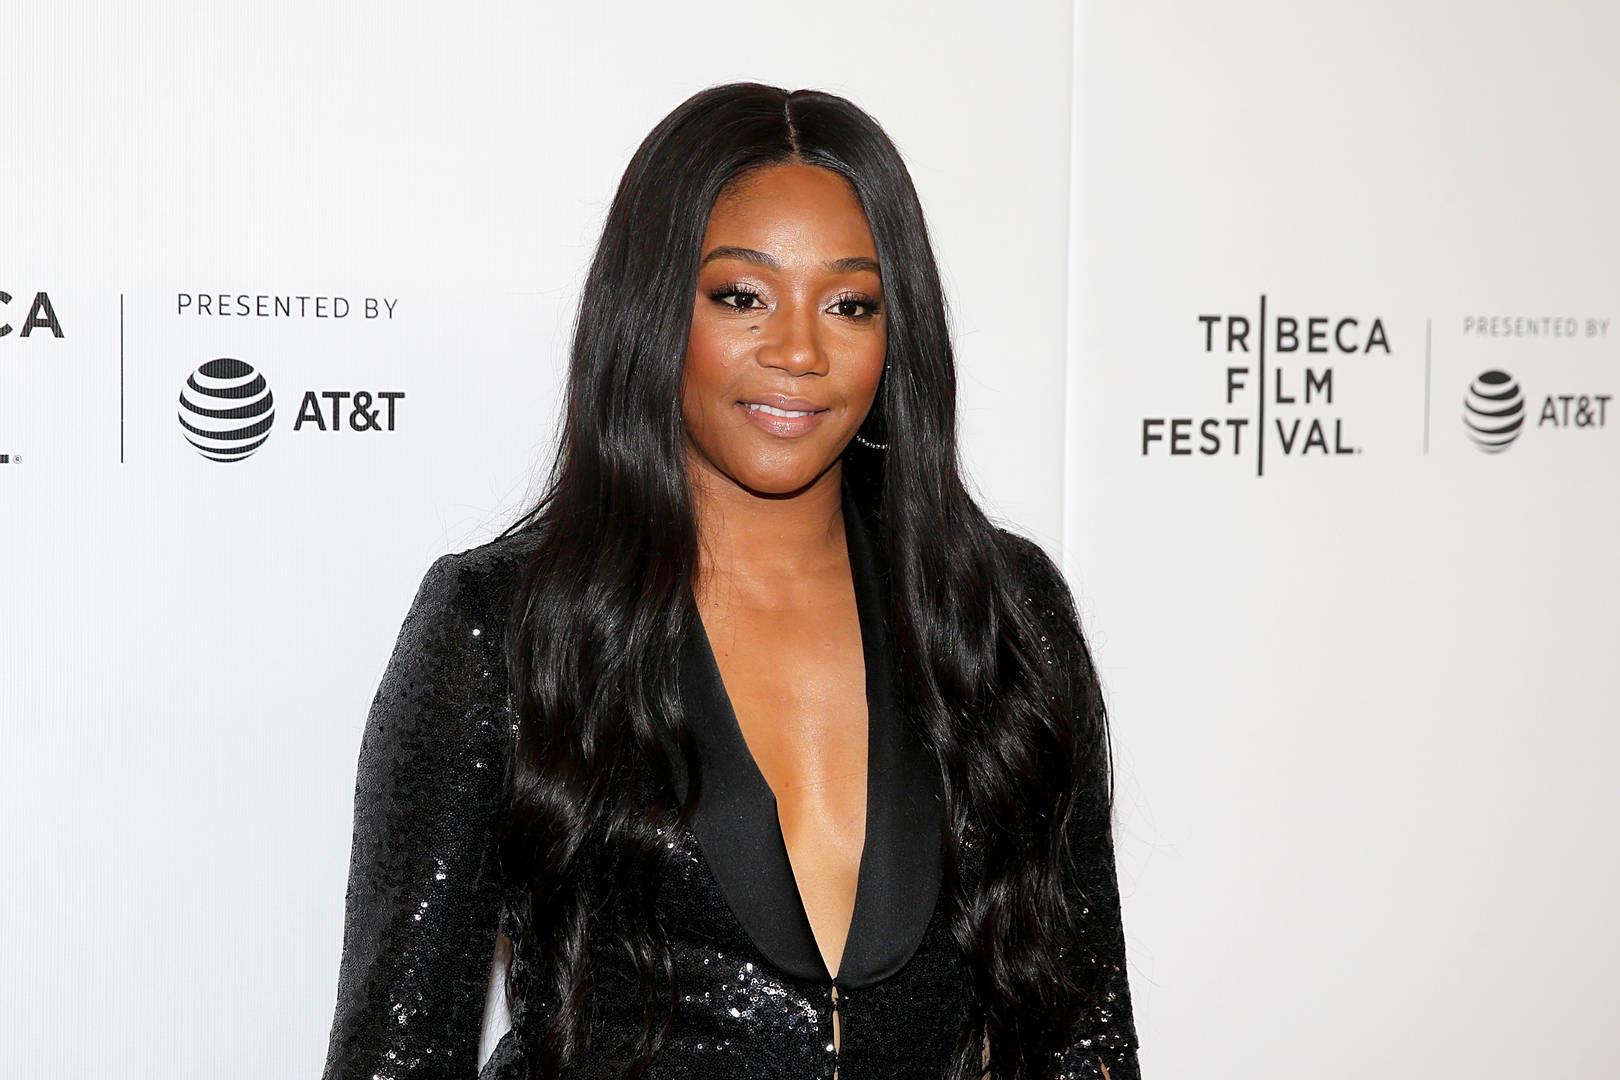 Tiffany Haddish cunningly recorded casting directors' comments after auditions